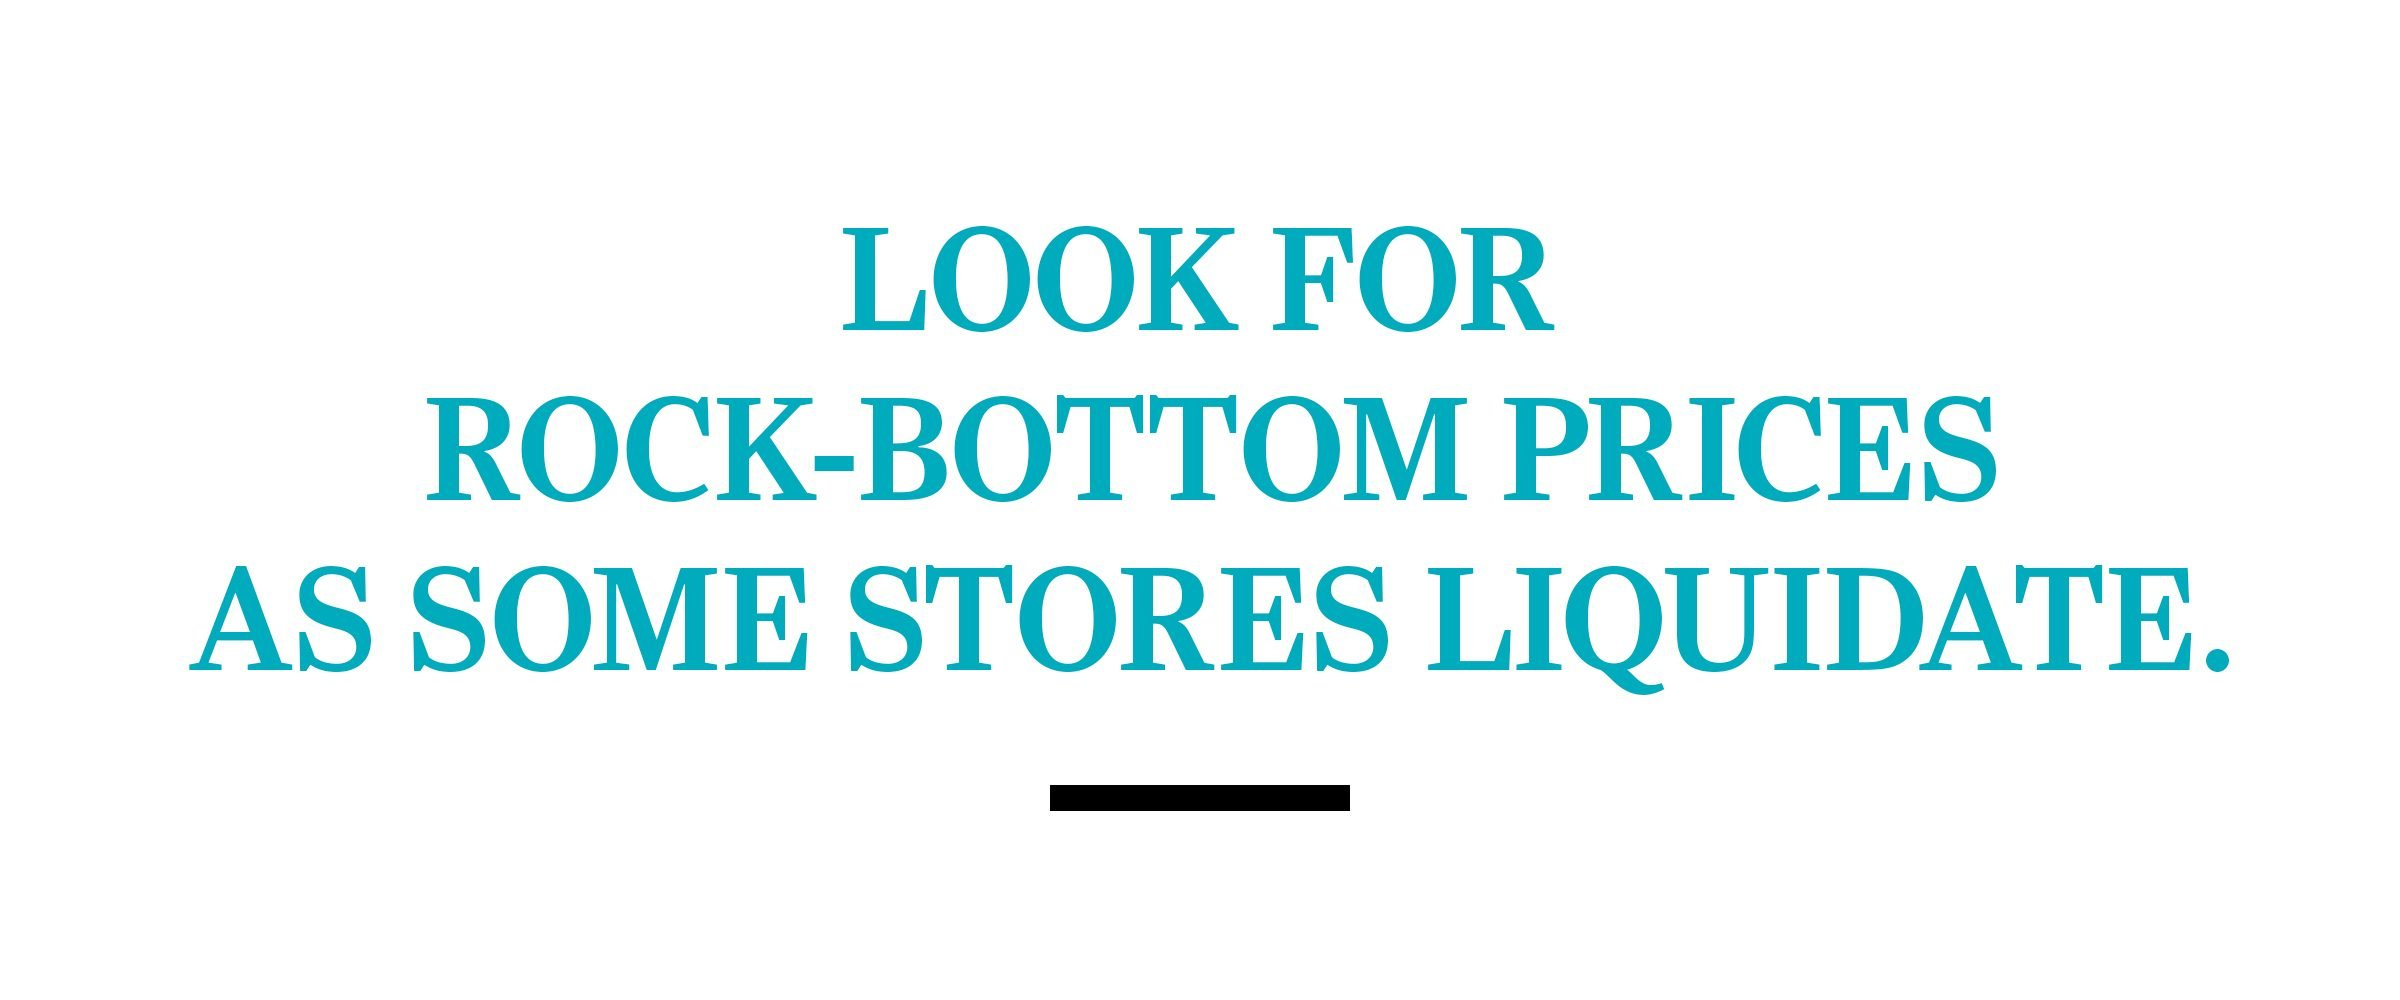 text: Look for rock-bottom prices as some stores liquidate.